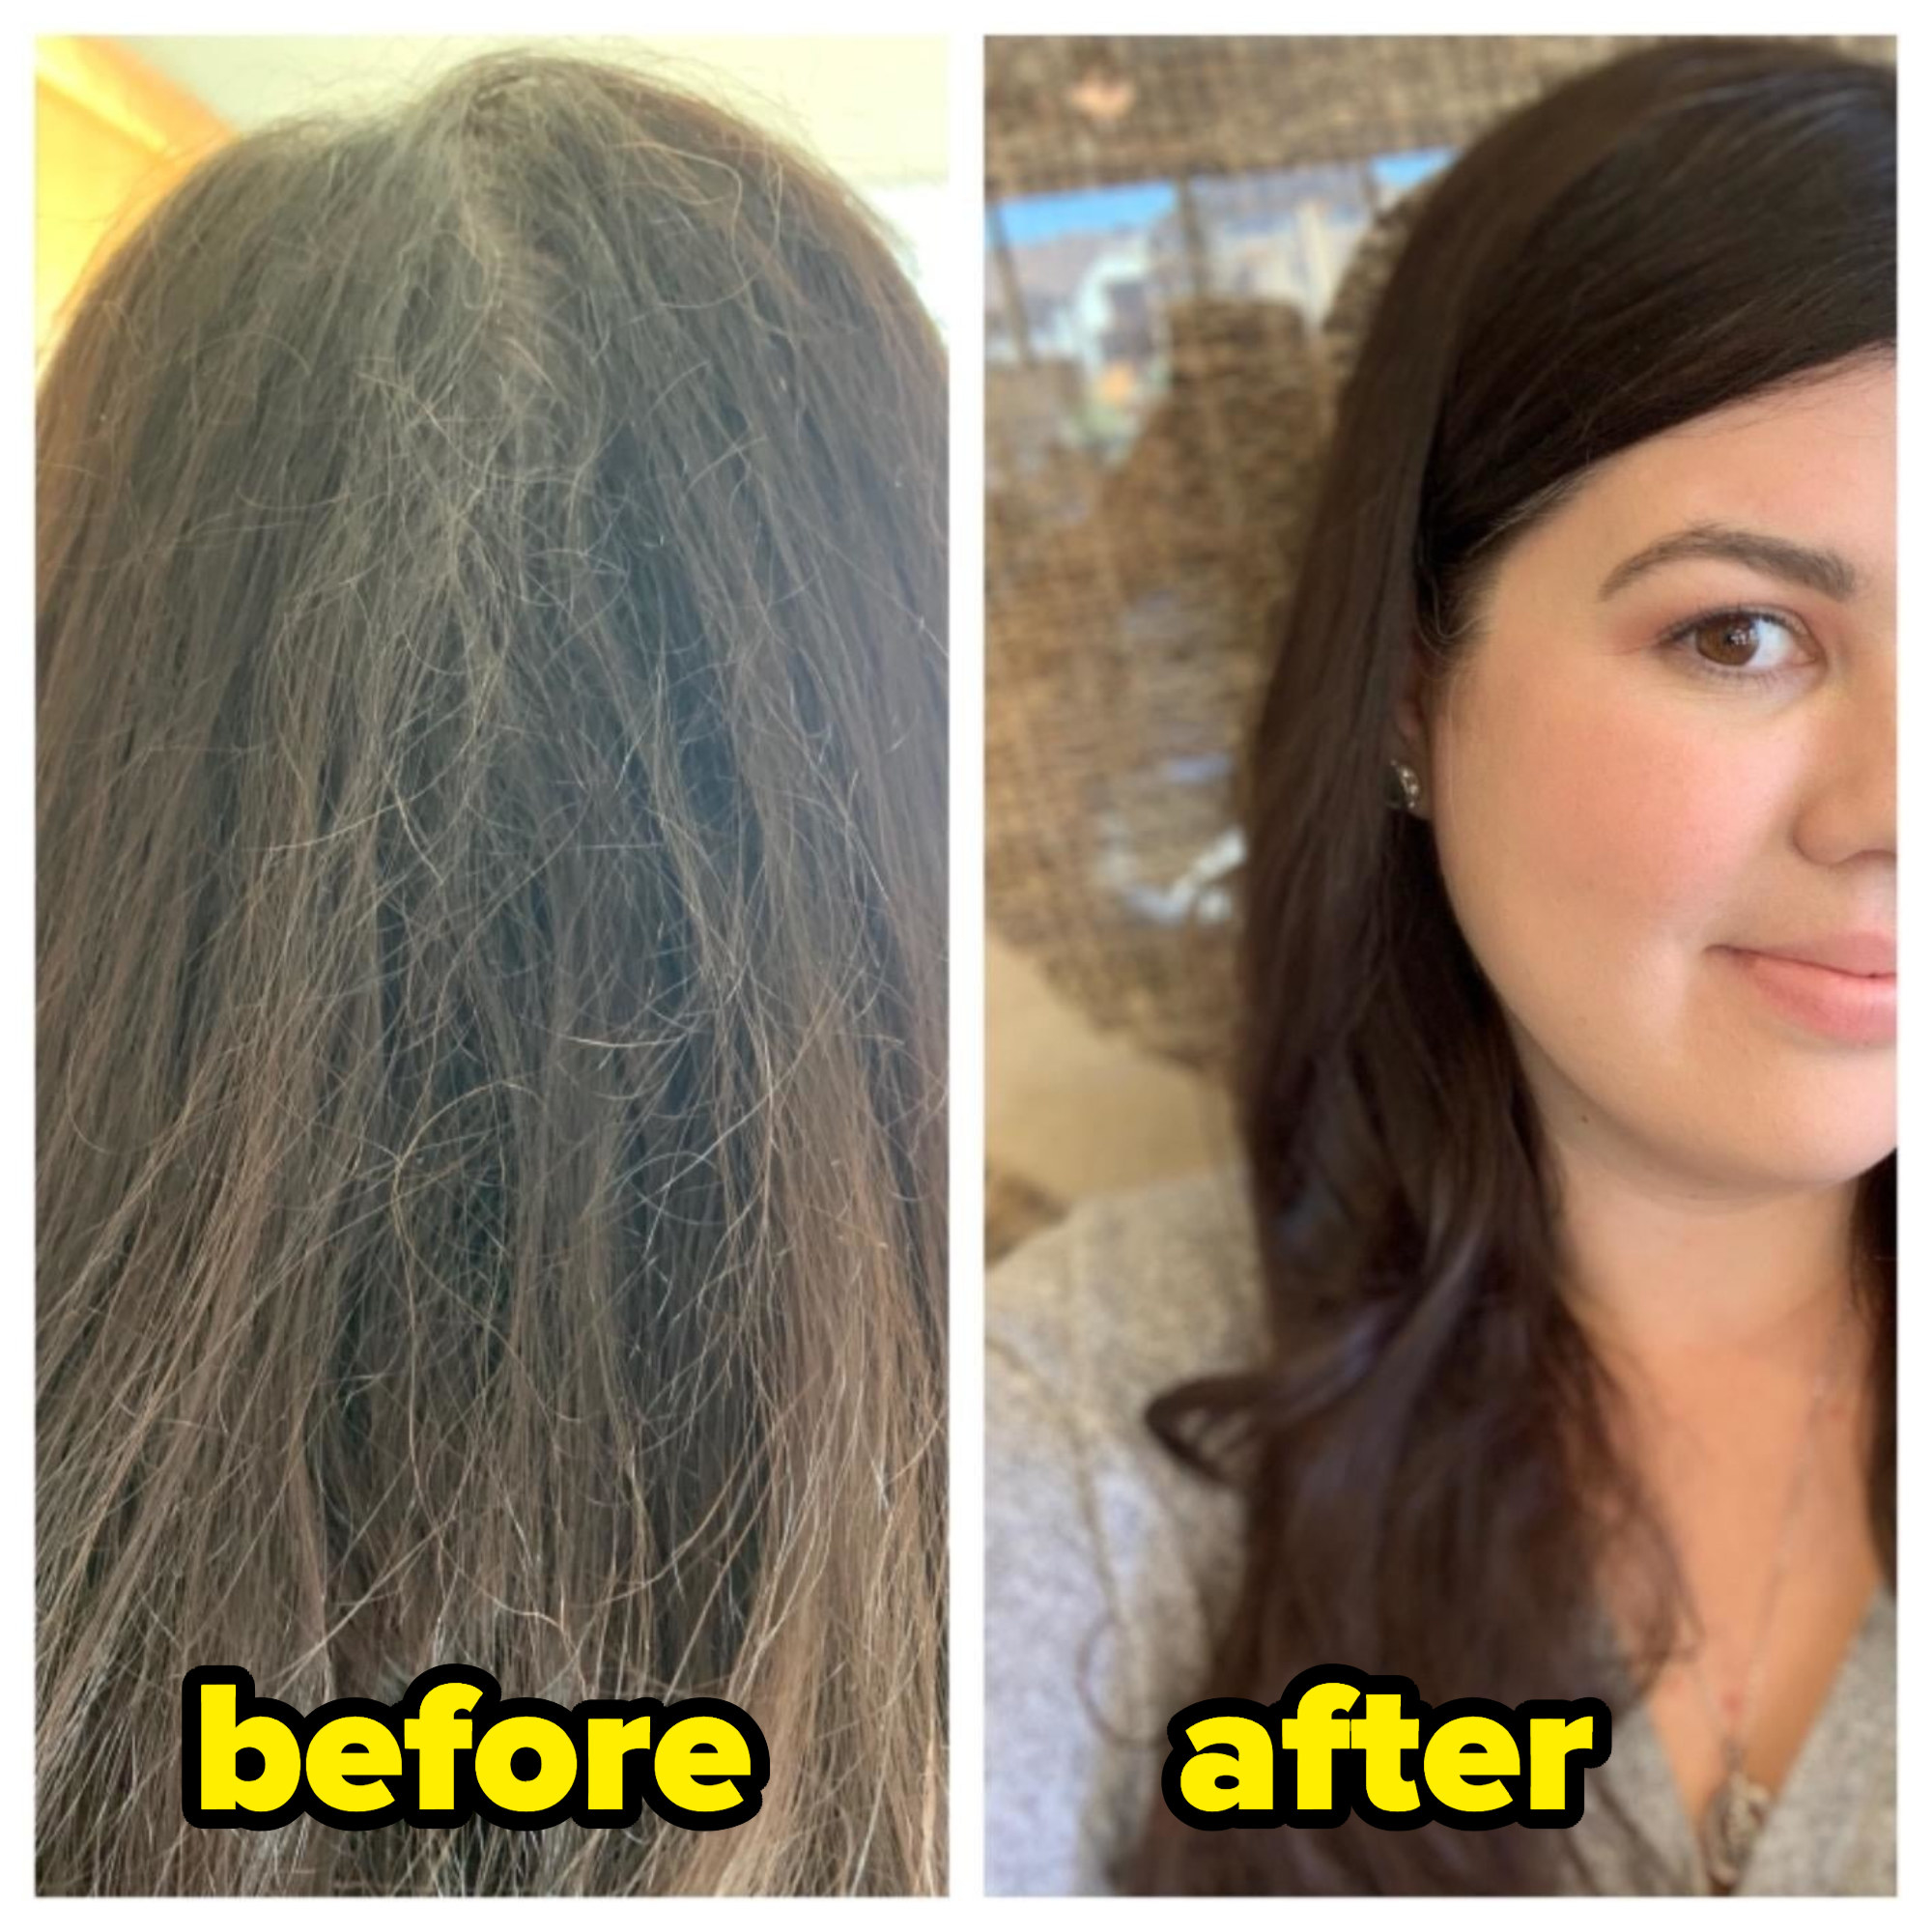 A customer's before and after shots; before their hair is frizzy and dull and after they're hair is bright and soft